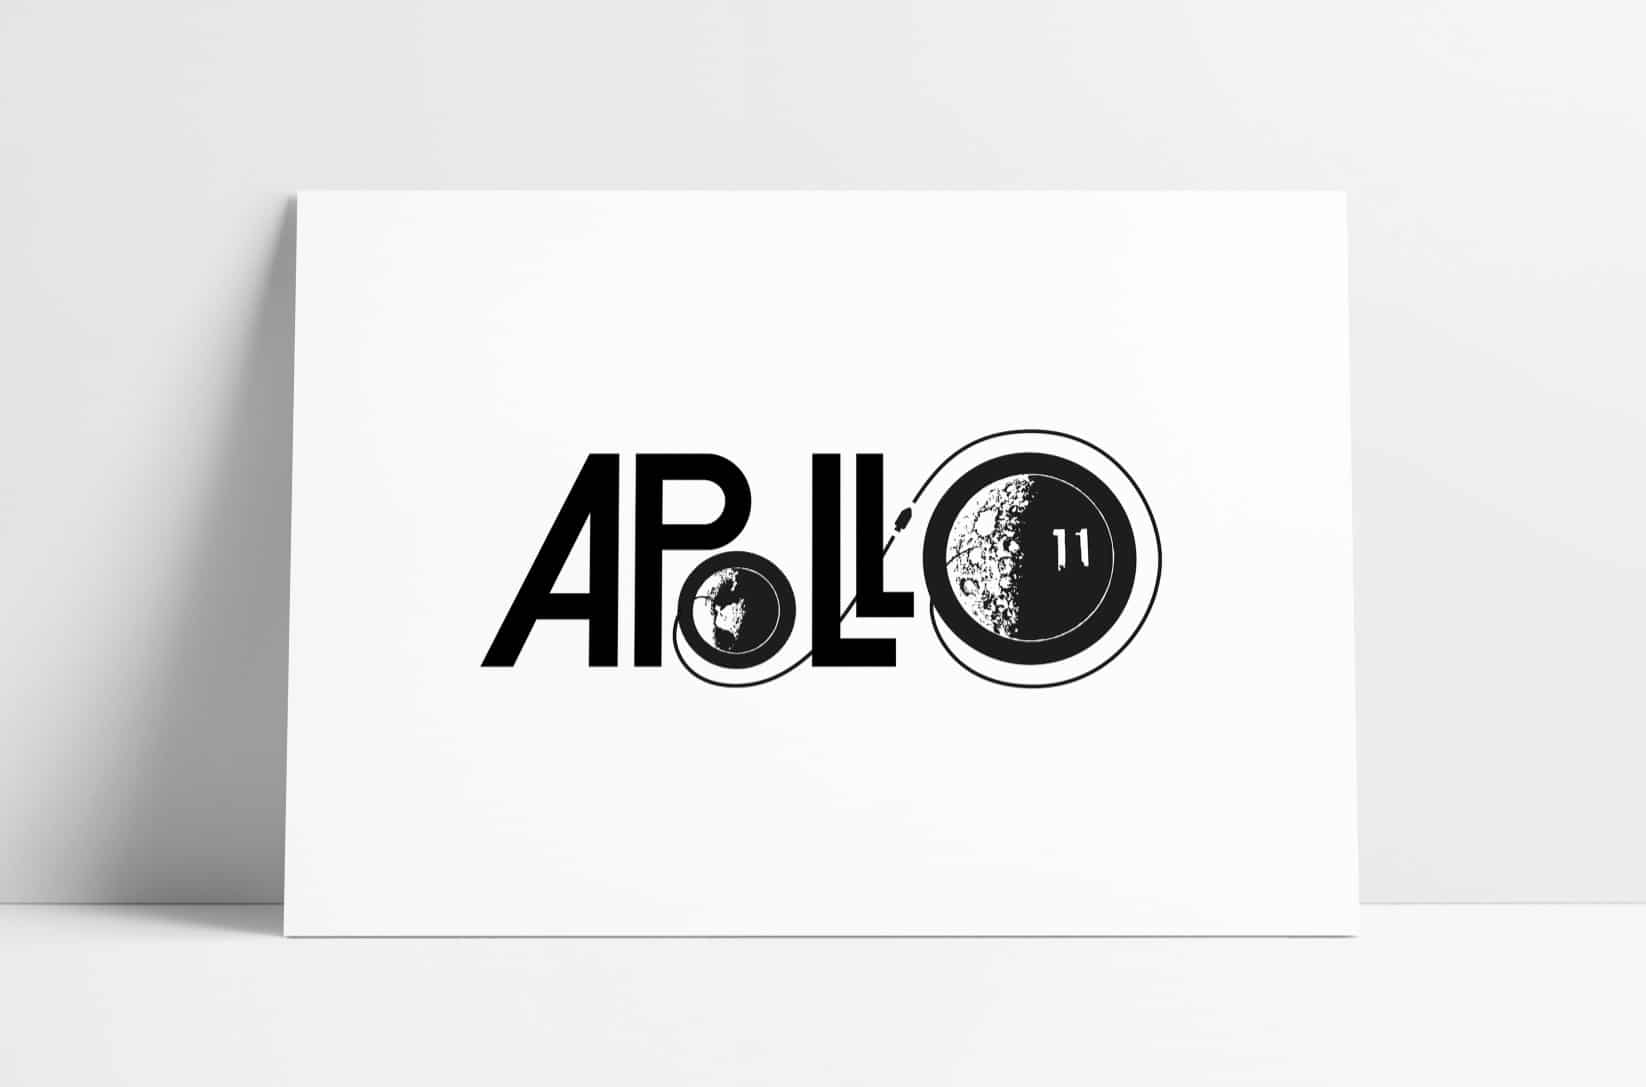 Apollo 11 Bell Aerosystems Press Kit Logo recreated by The Logo Smith